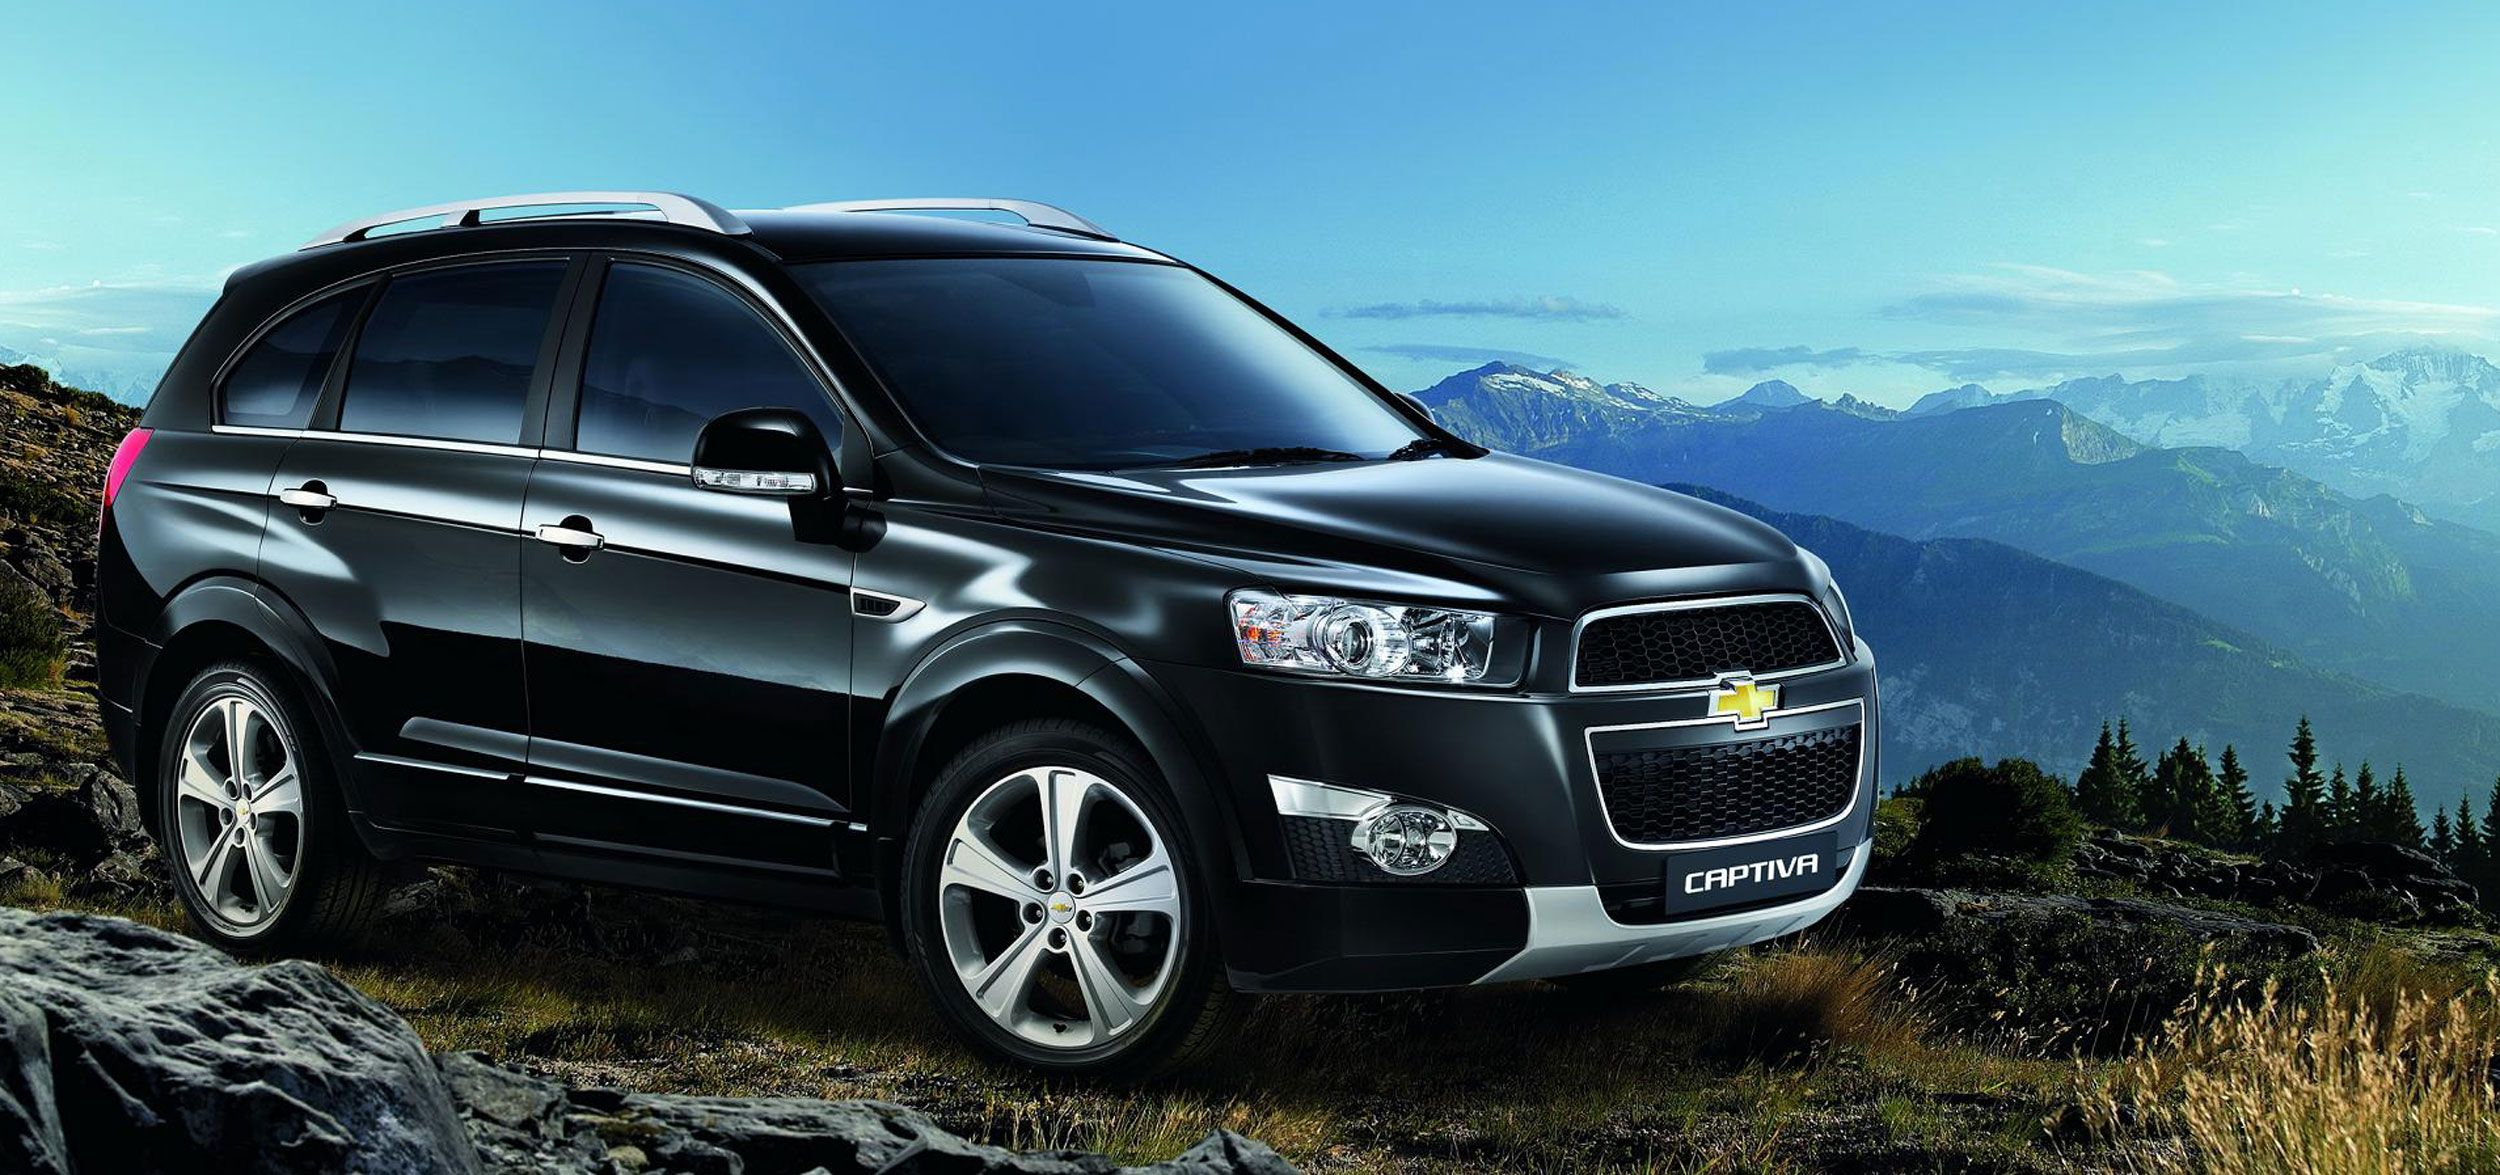 2015 chevy captiva black derek 39 s other car chevrolet captiva chevrolet captiva sport chevrolet. Black Bedroom Furniture Sets. Home Design Ideas